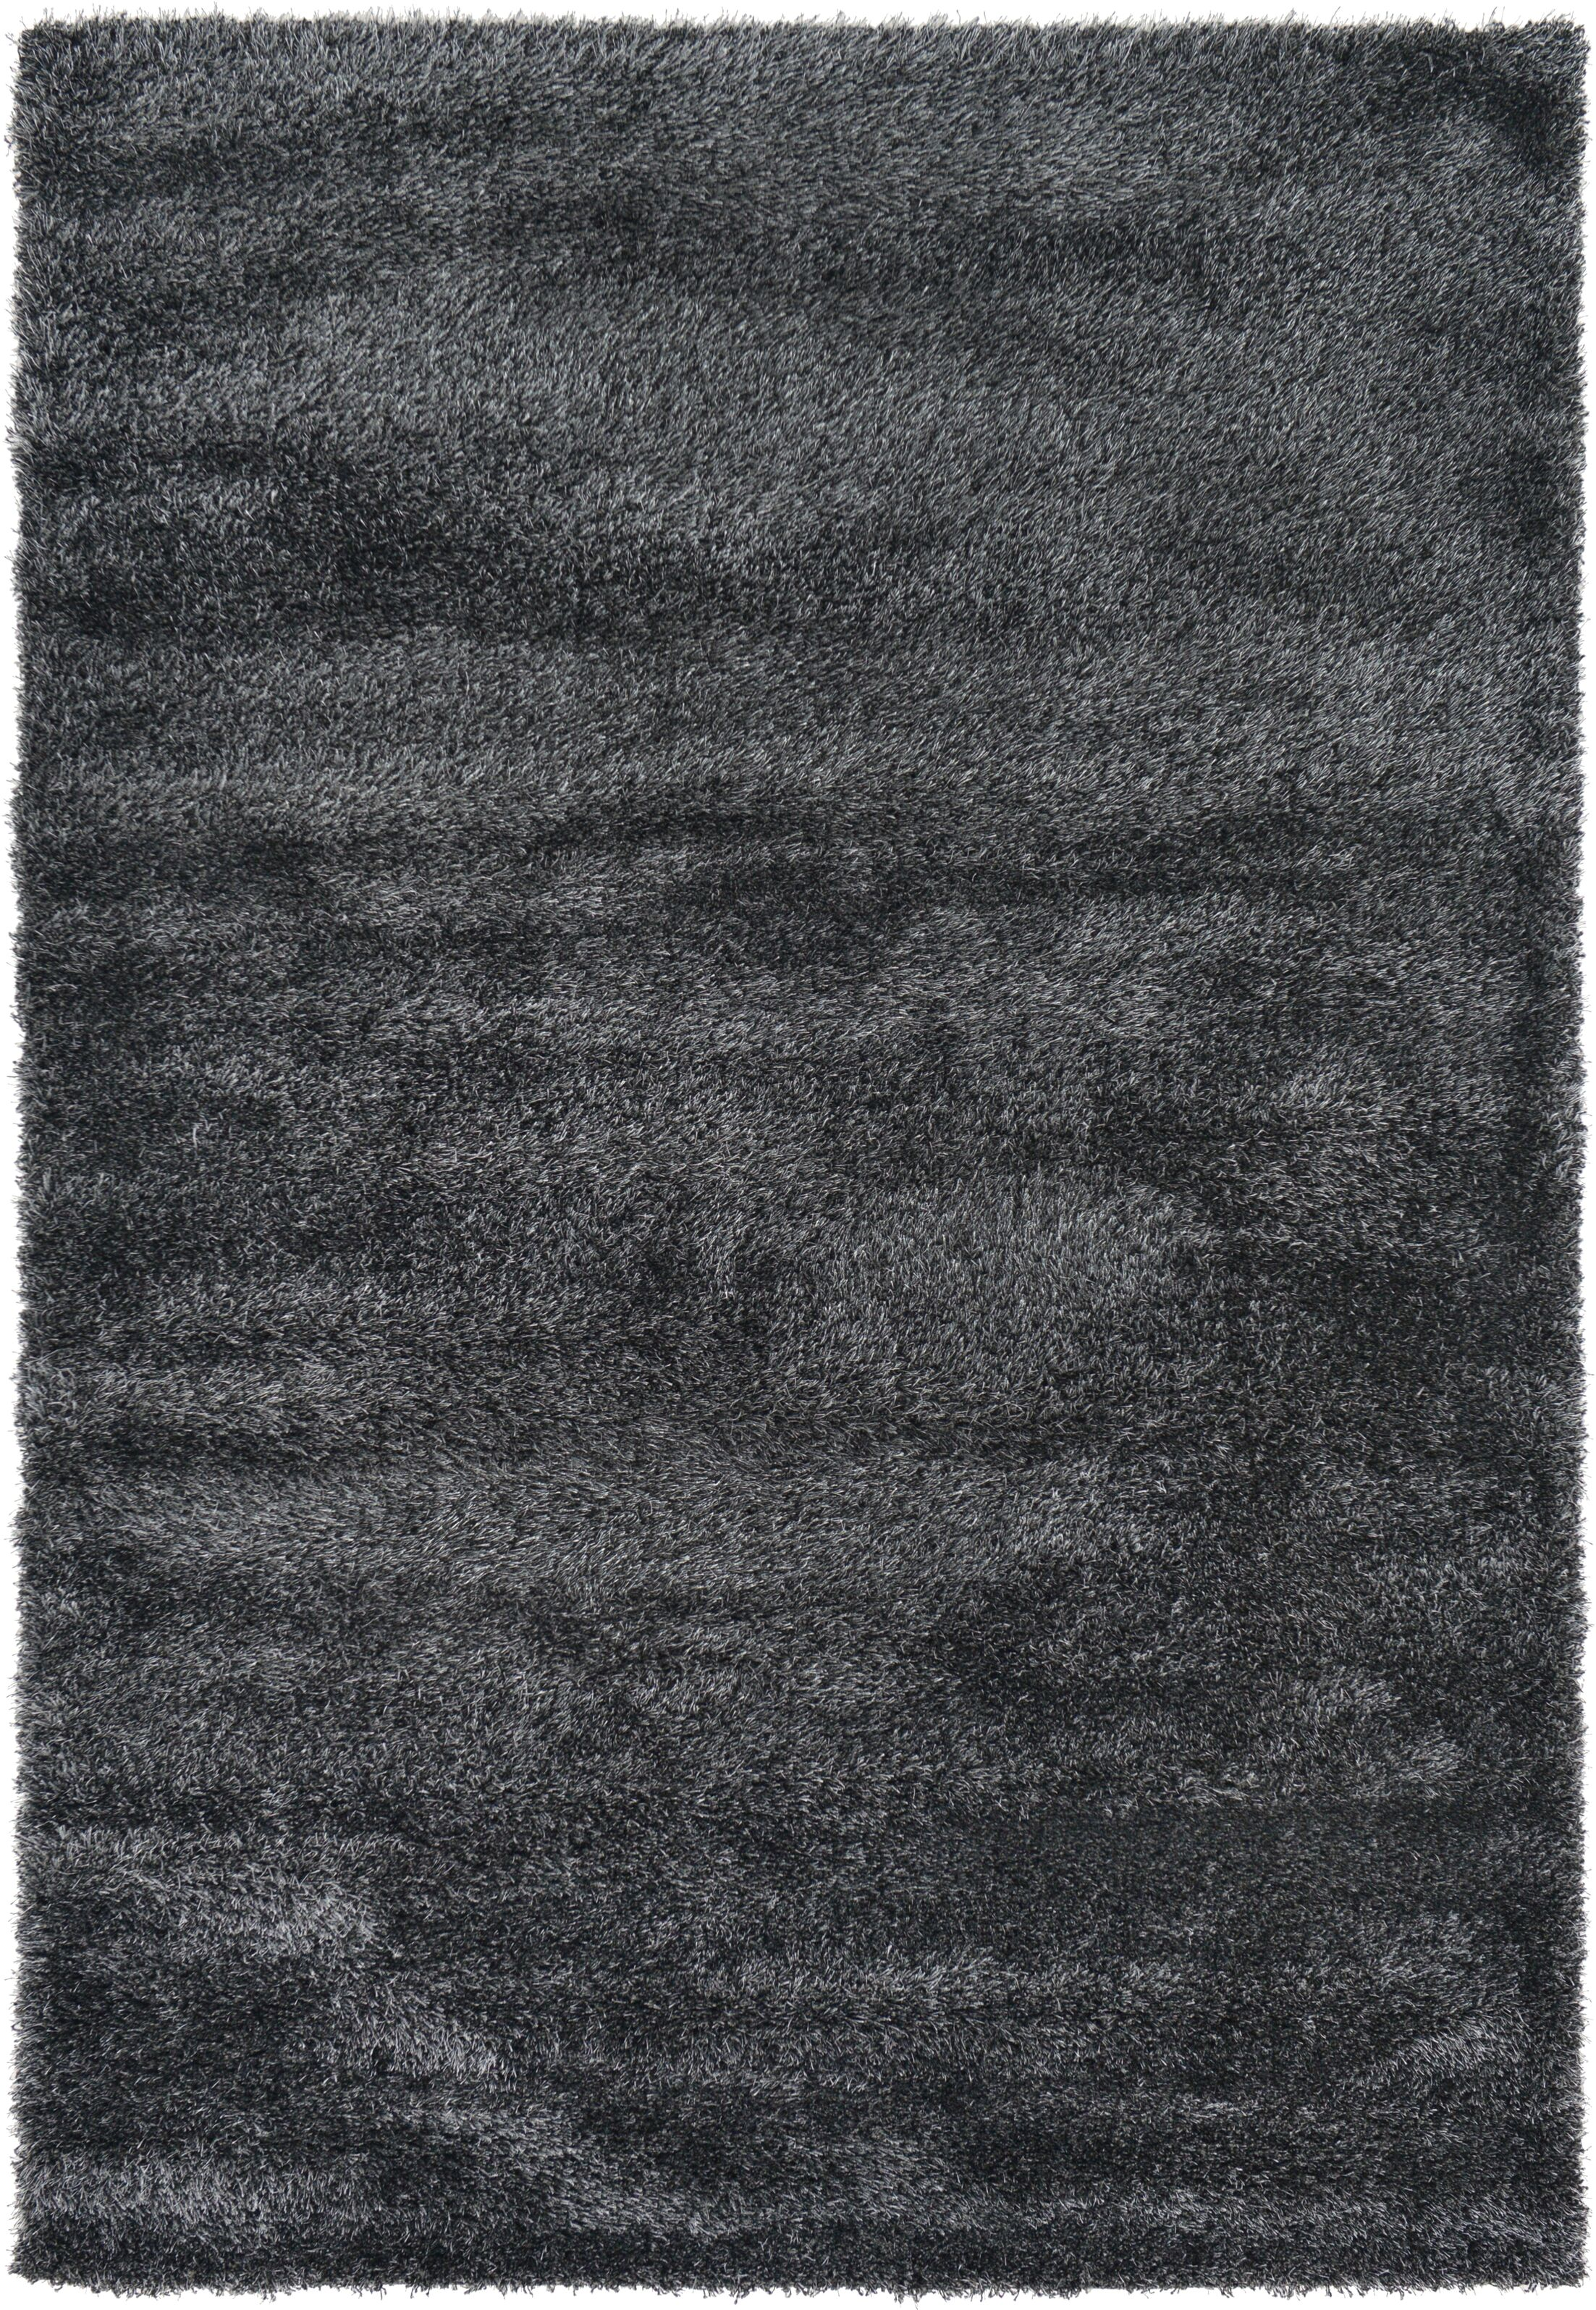 Evelyn Black Area Rug Rug Size: Rectangle 6' x 9'